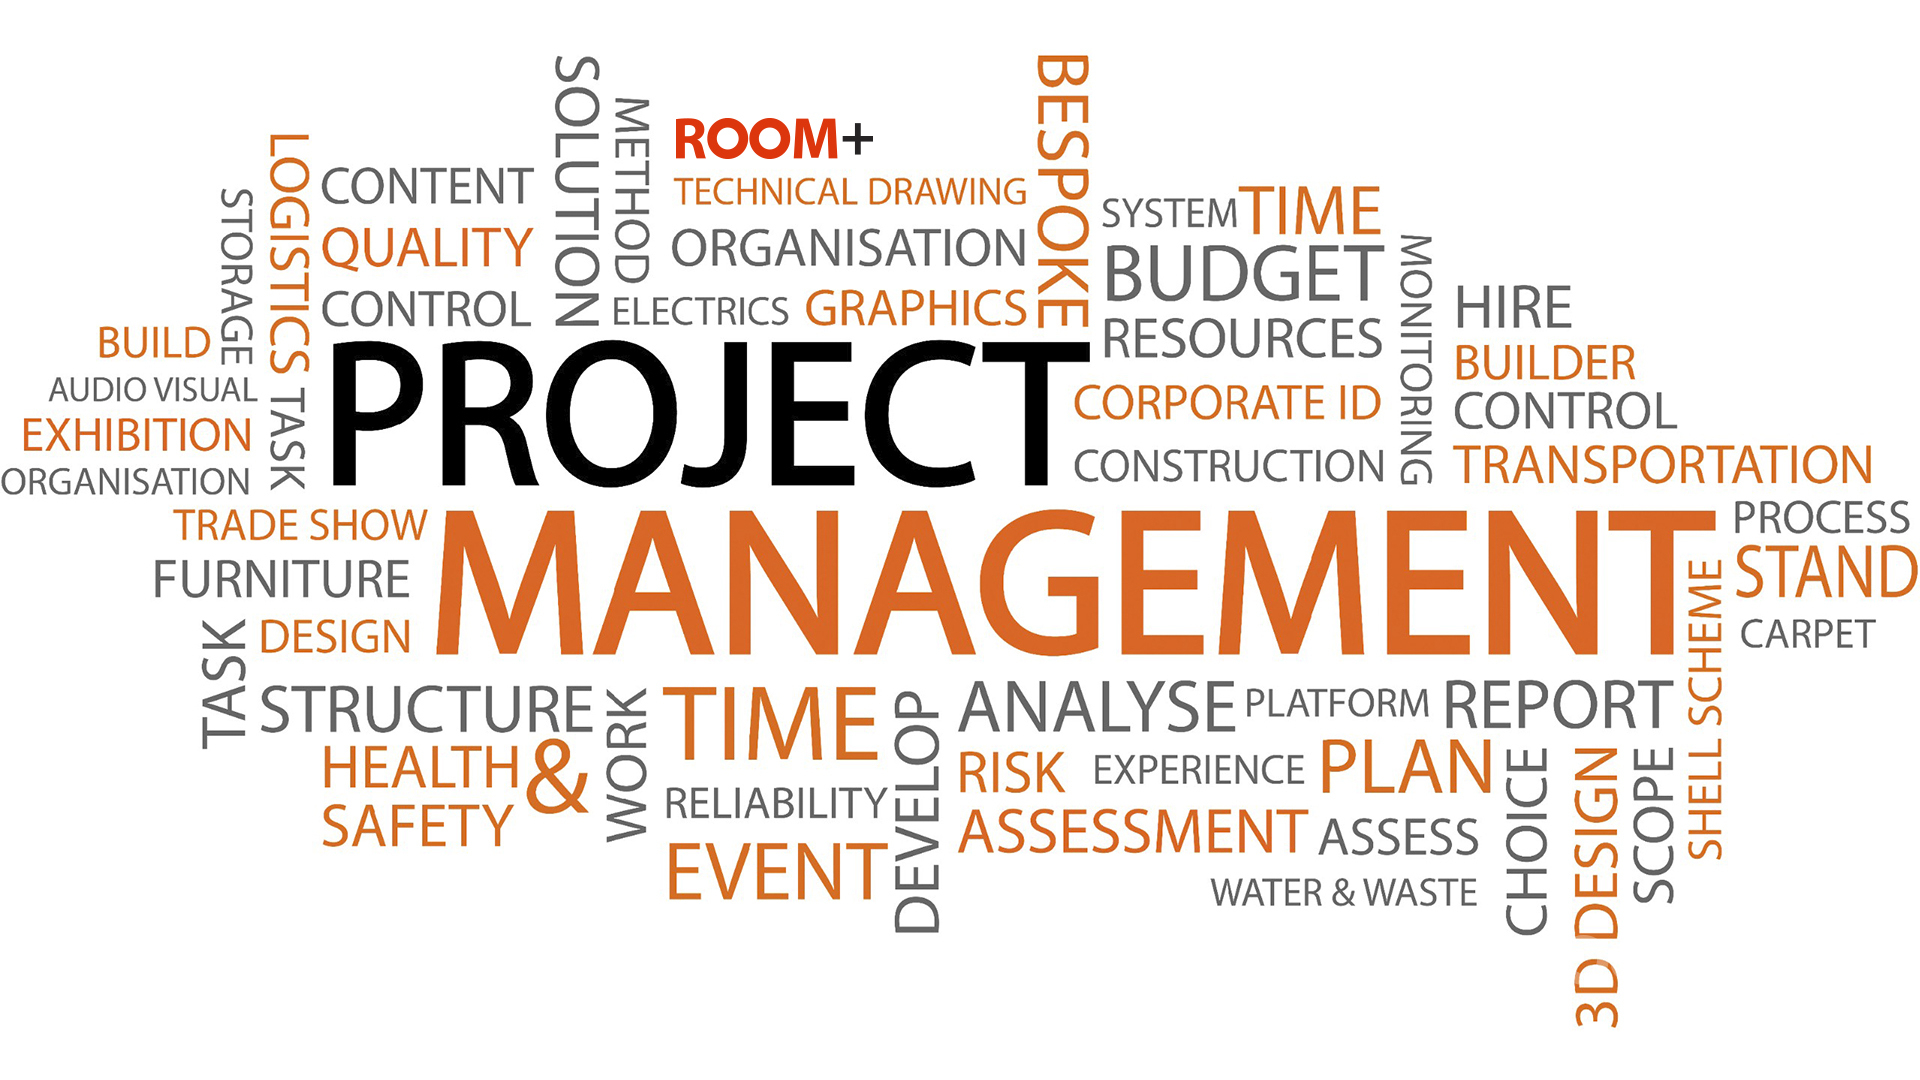 ROOM+ Project Management (2)